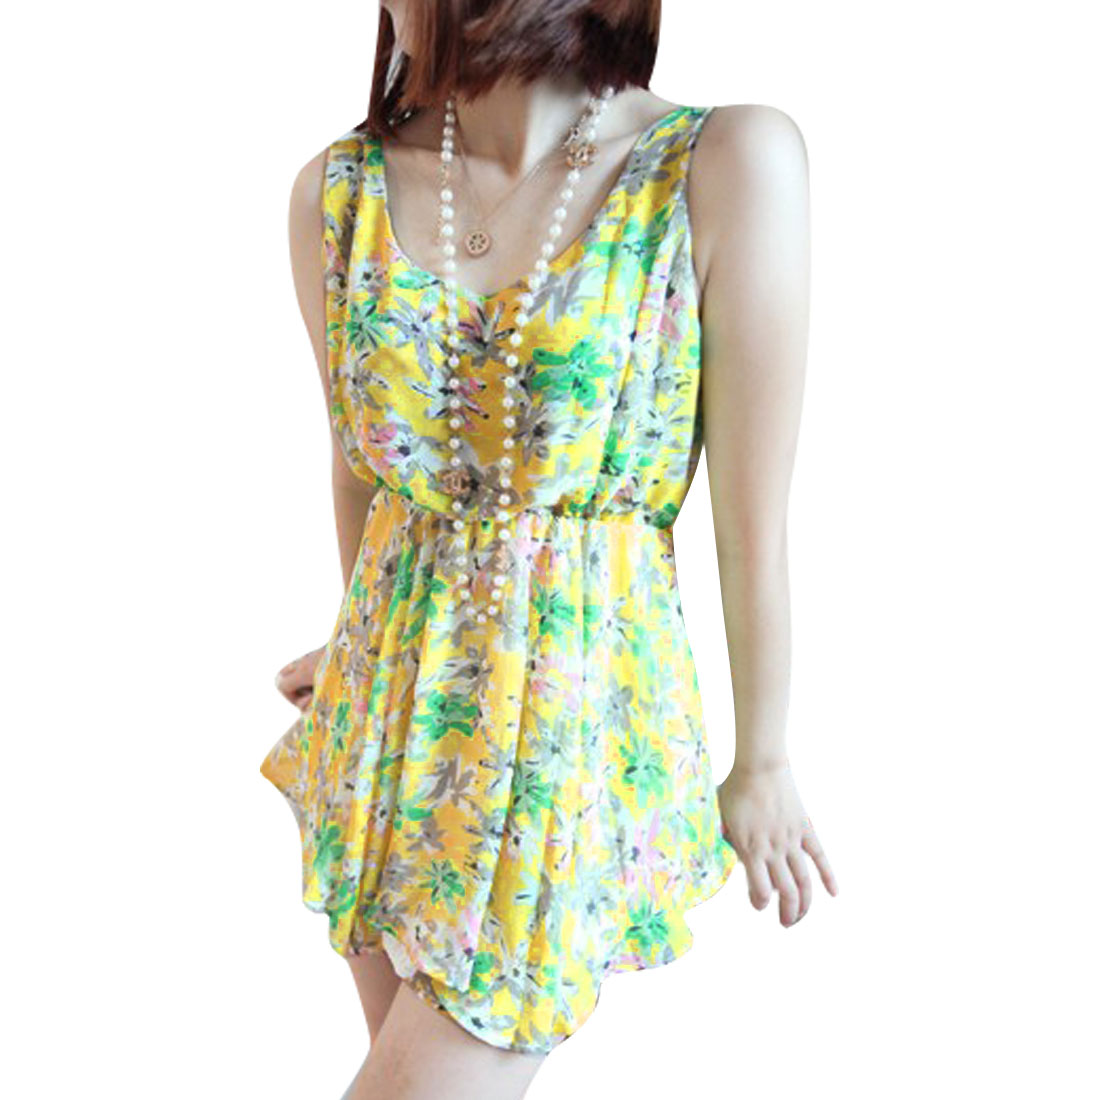 XS Ladies Floral Pattern Design Top w Stretchy Waist Shorts Yellow